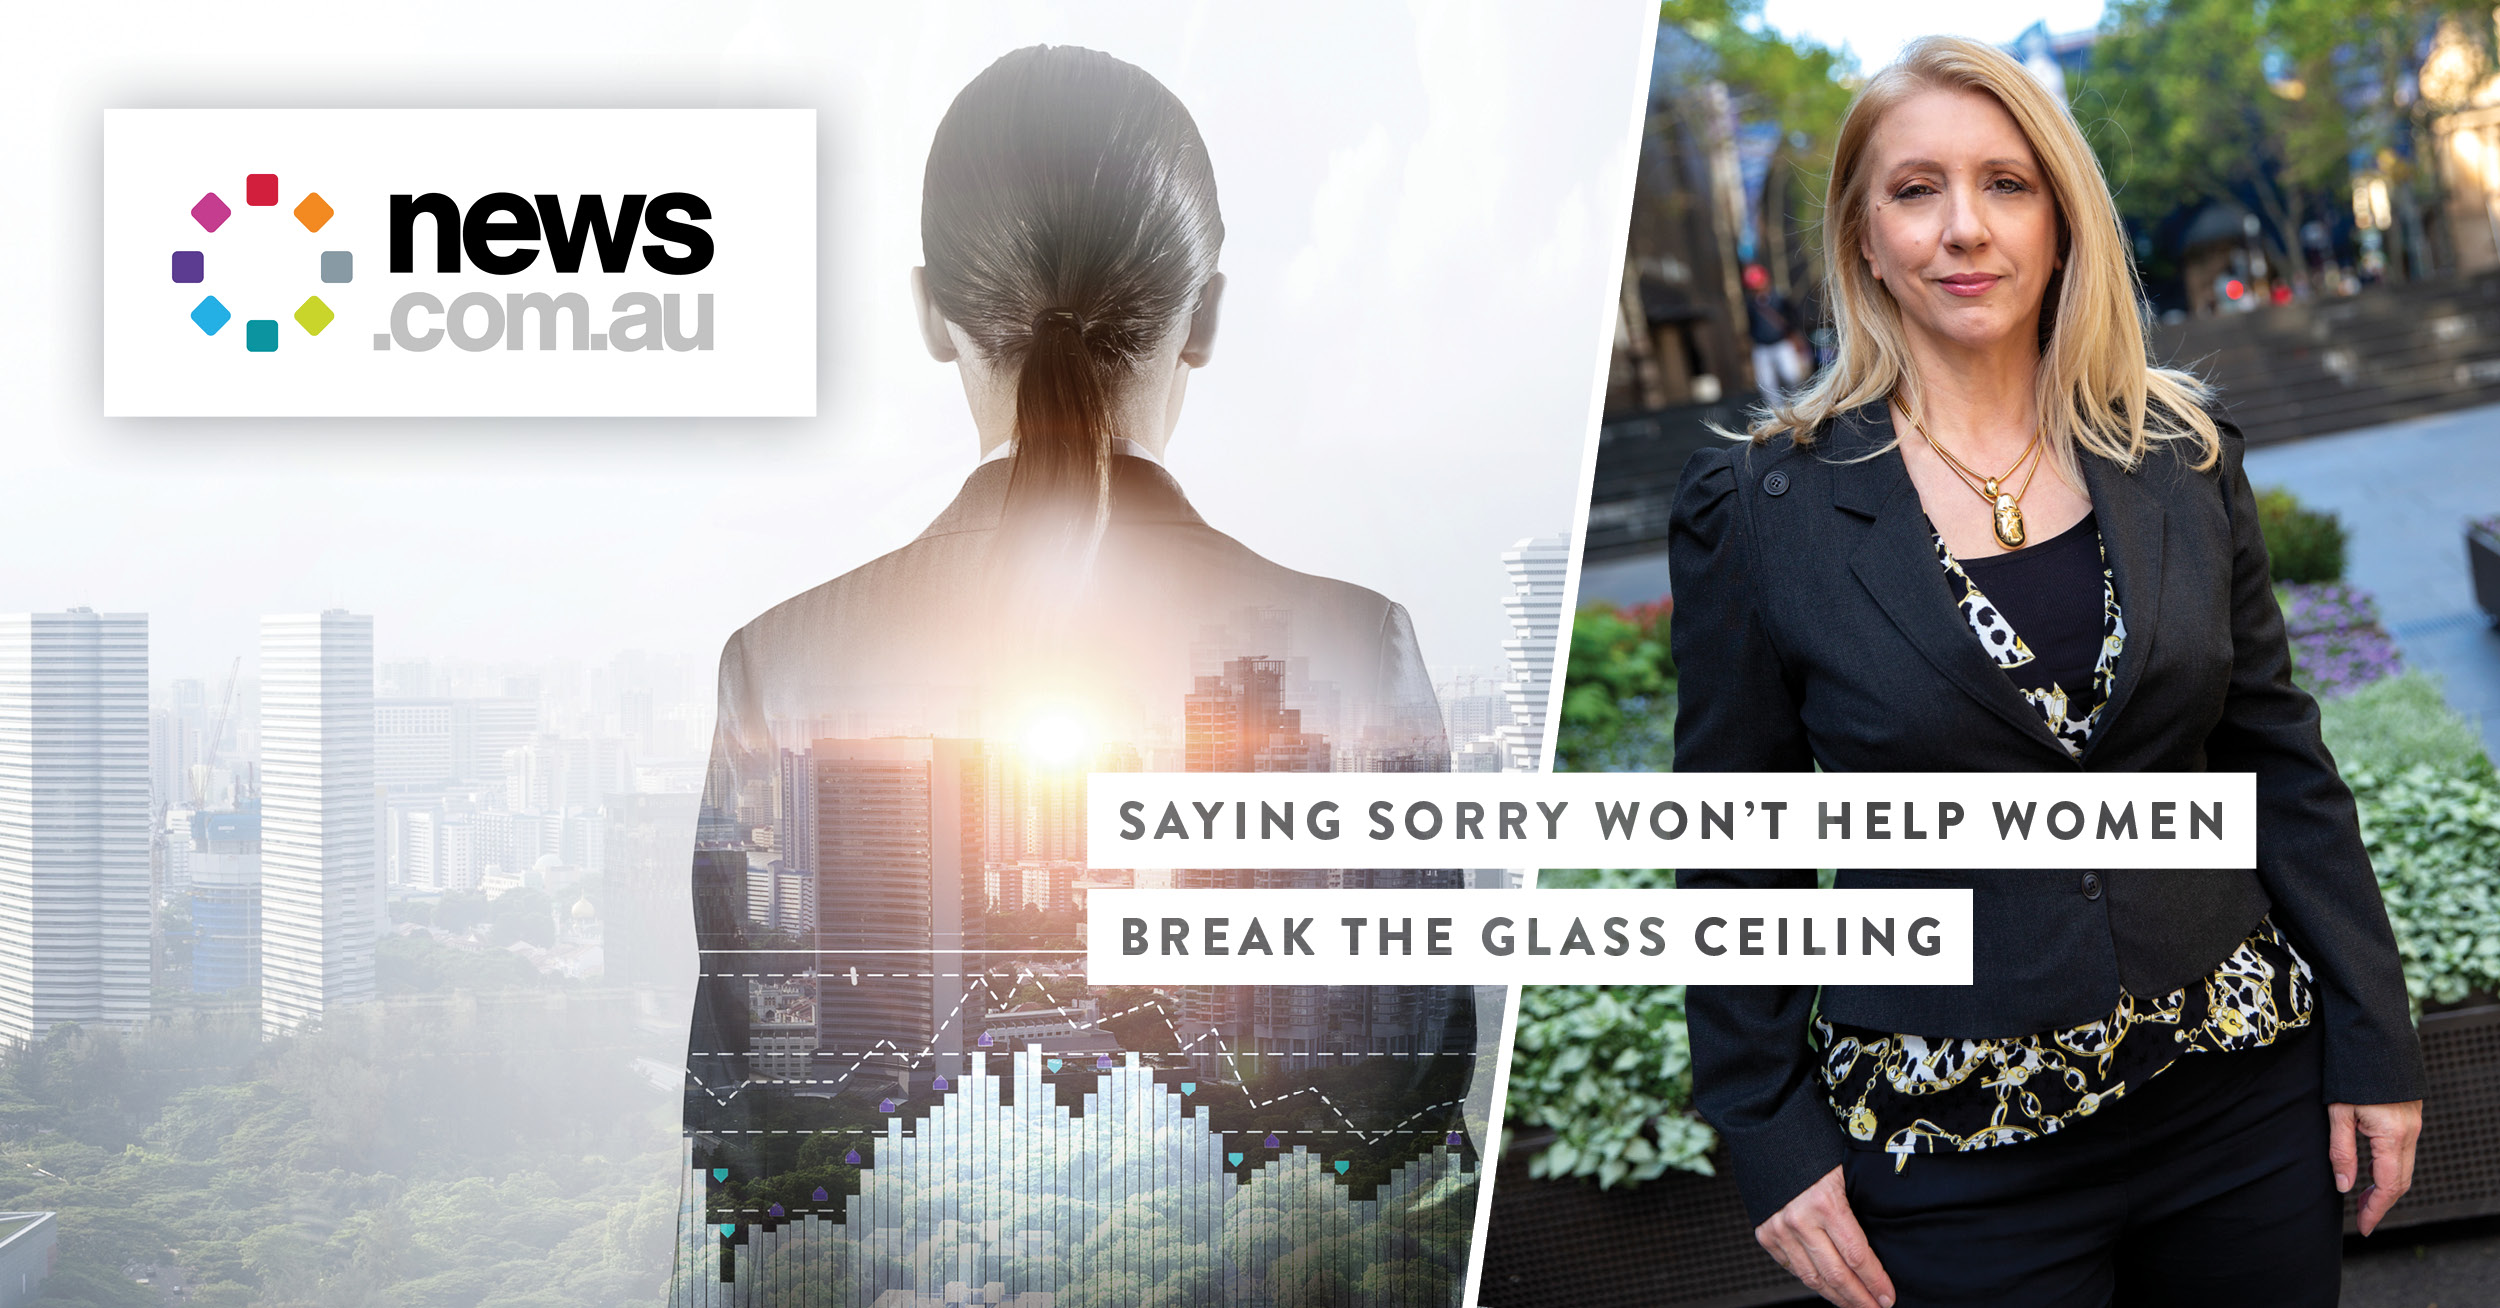 News.com.au: Saying Sorry Won't Help Women Break The Glass Ceiling